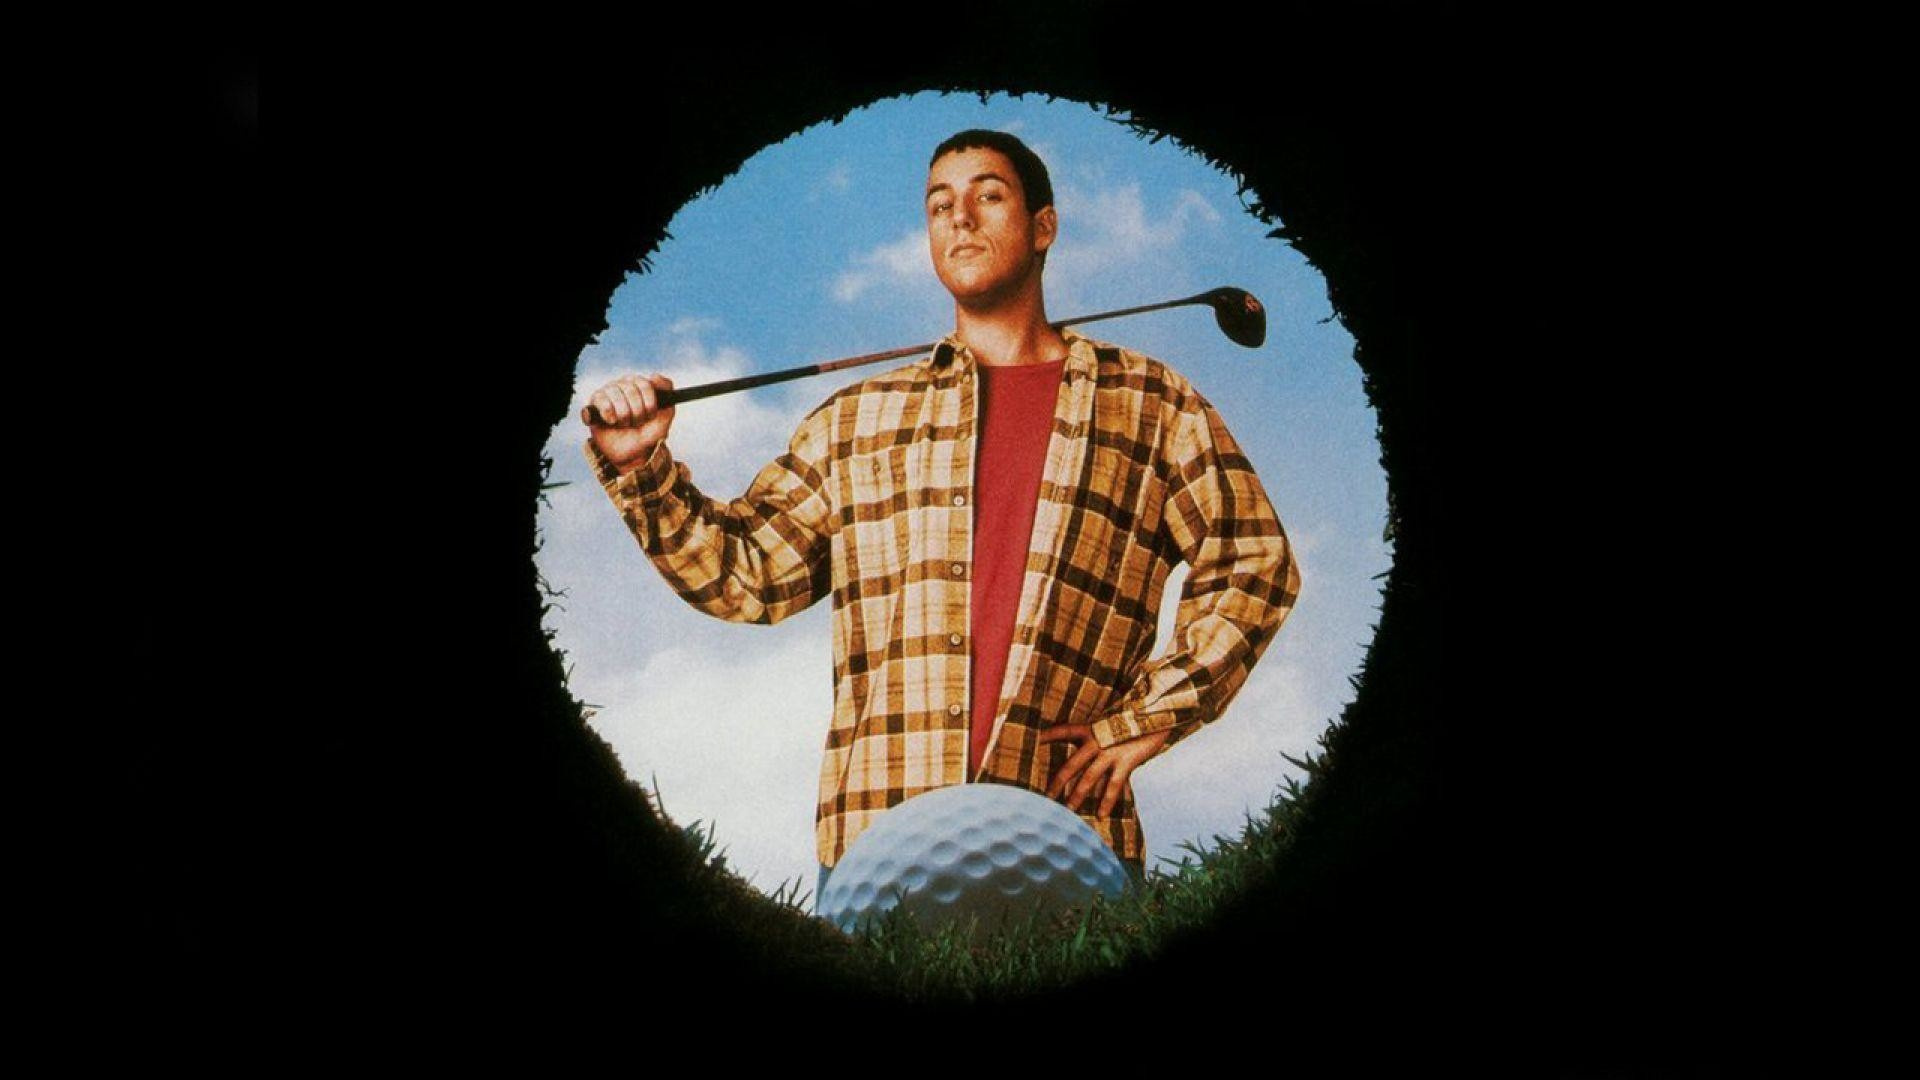 Adam Sandler's golf movie Happy Gilmore has produced a cult following since its release in 1996 -- and turned Bob Barker into a tough guy